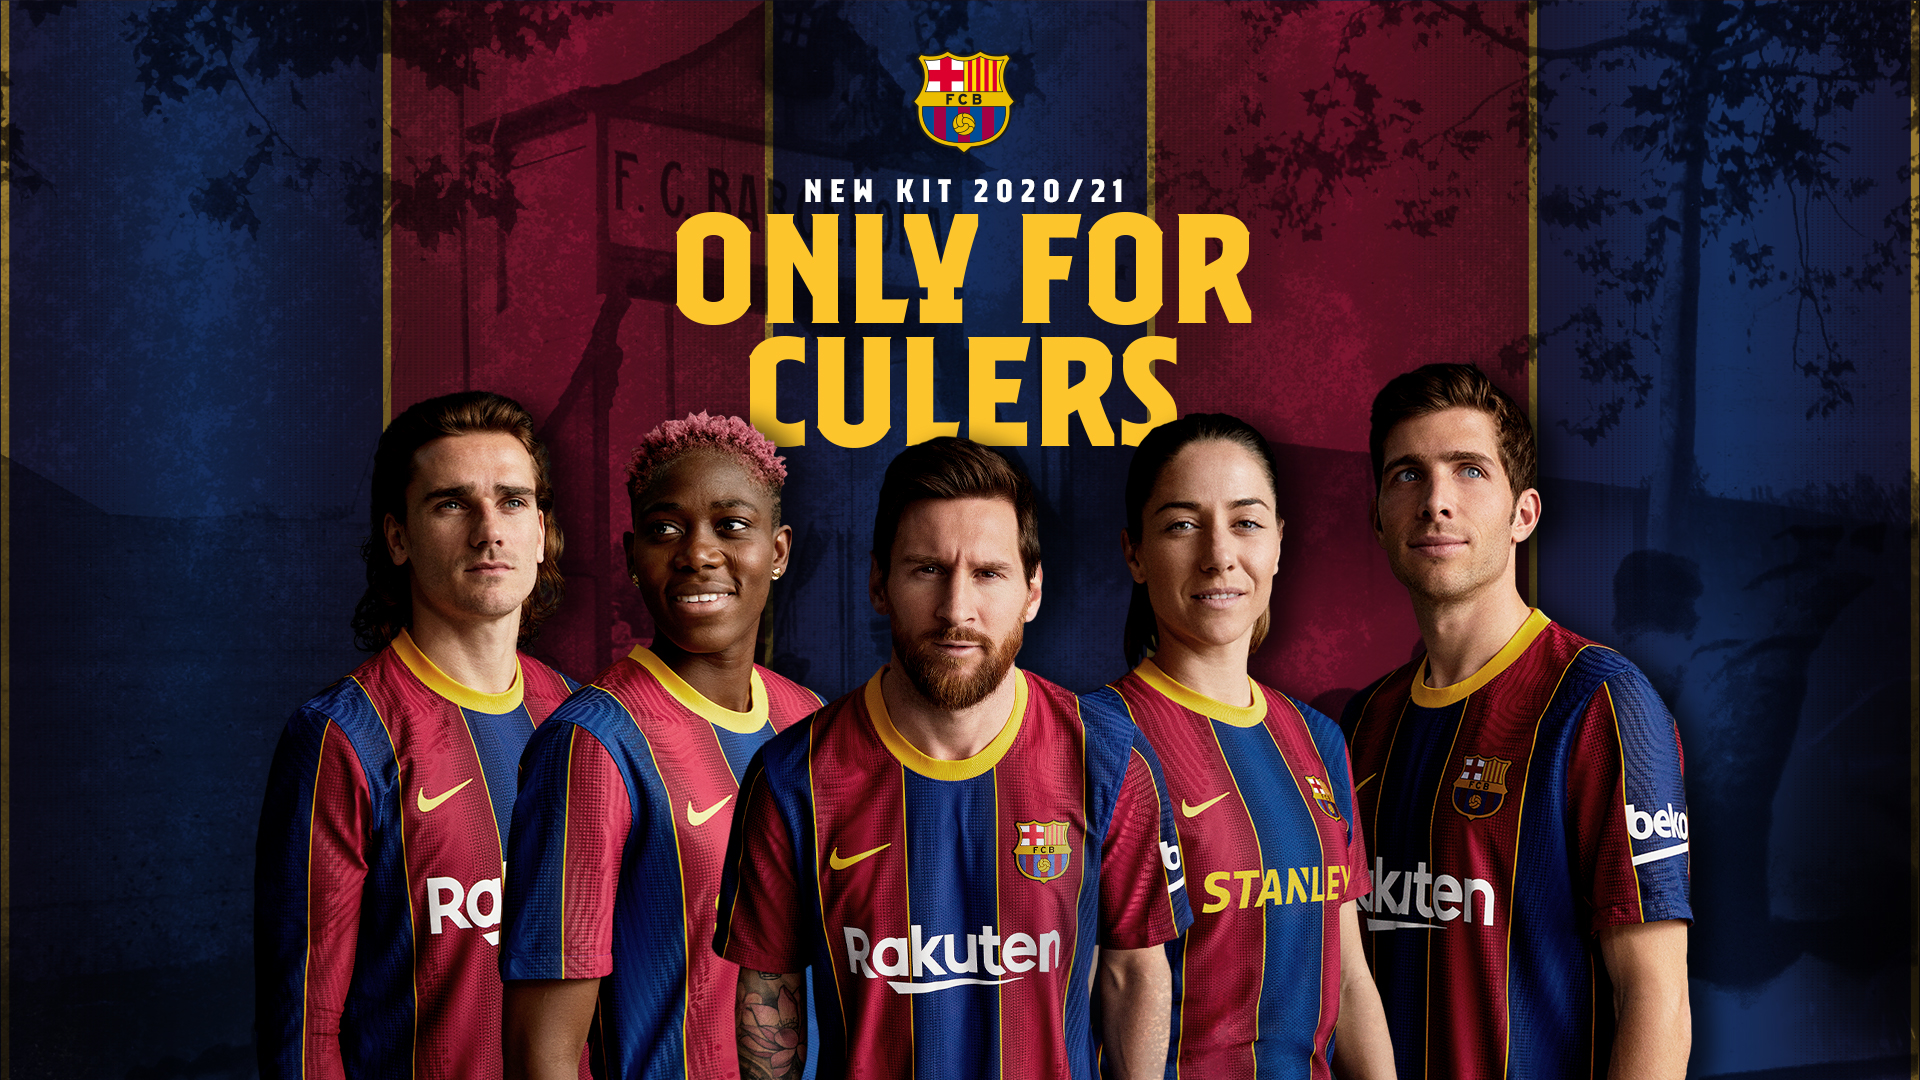 fc barcelona new kit 20 21 soler casafont fc barcelona new kit 20 21 soler casafont